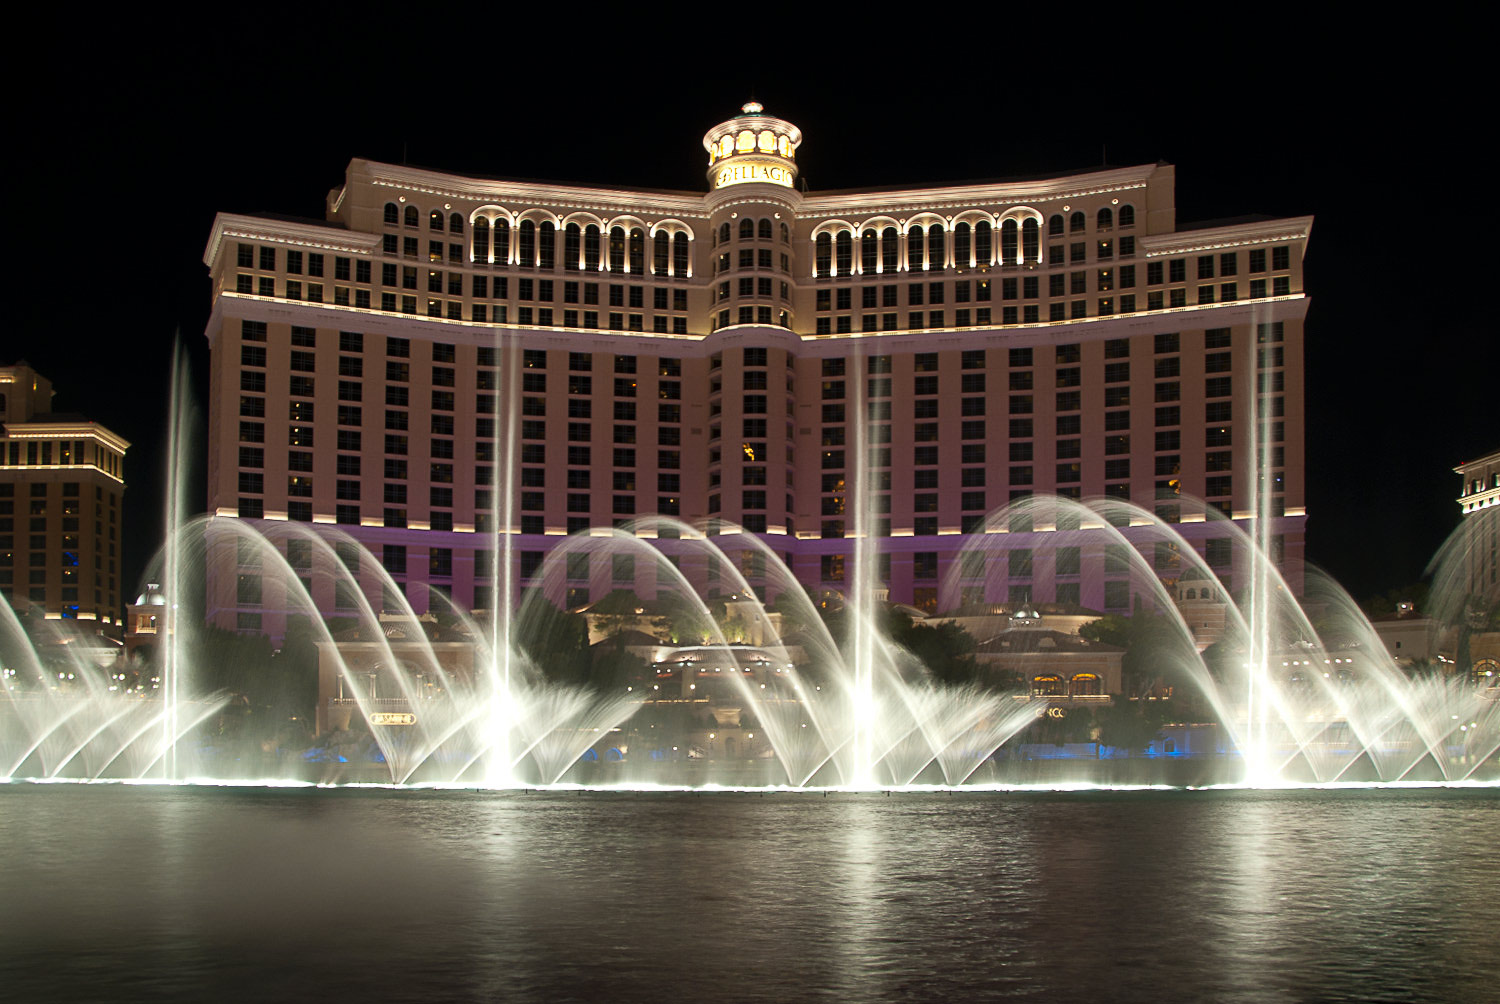 night-las-vegas-nevada-bellagio-fountains-photograph